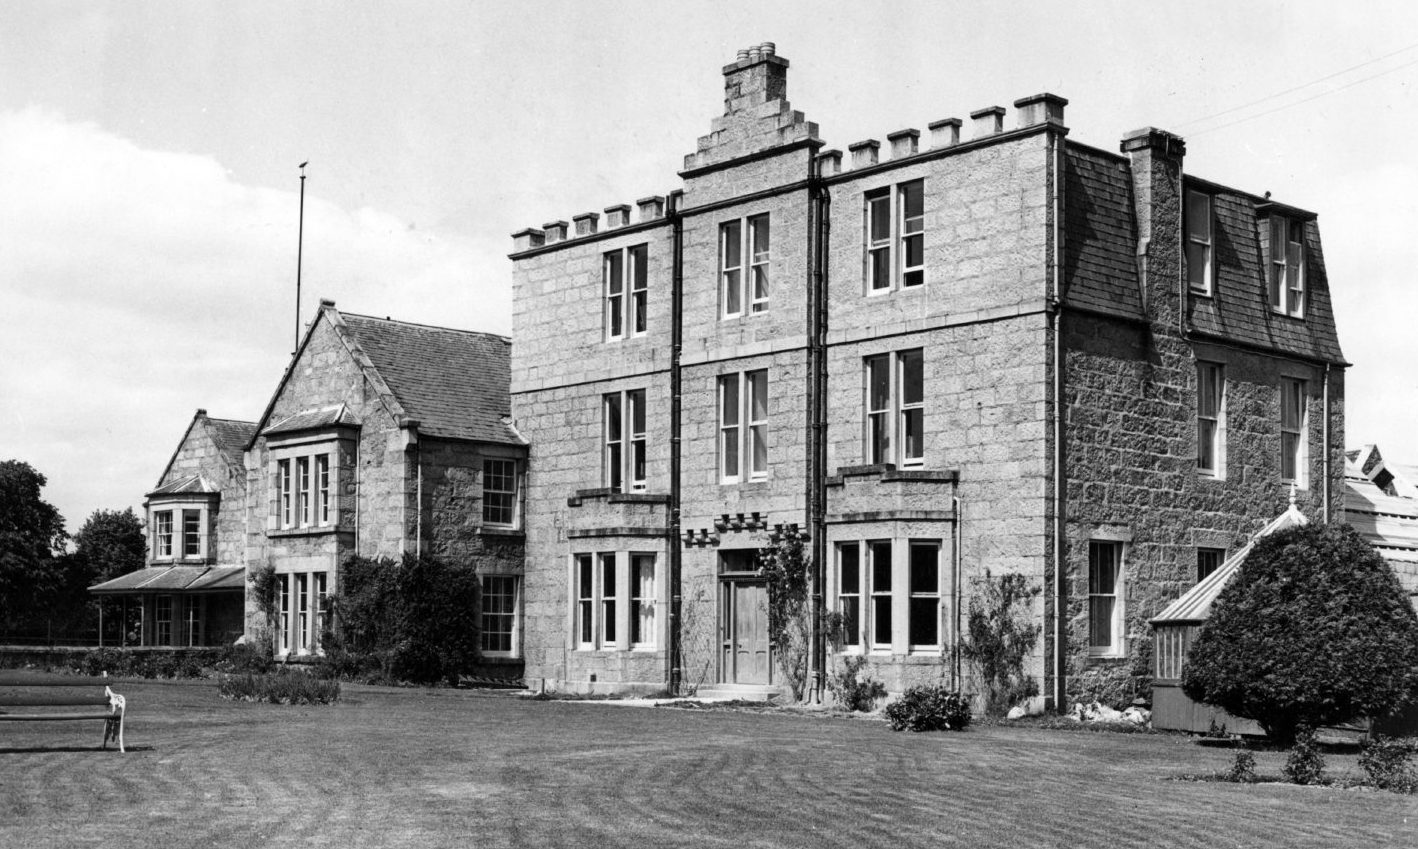 The Huntly Arms Hotel in Aboyne, photographed in June 1949.